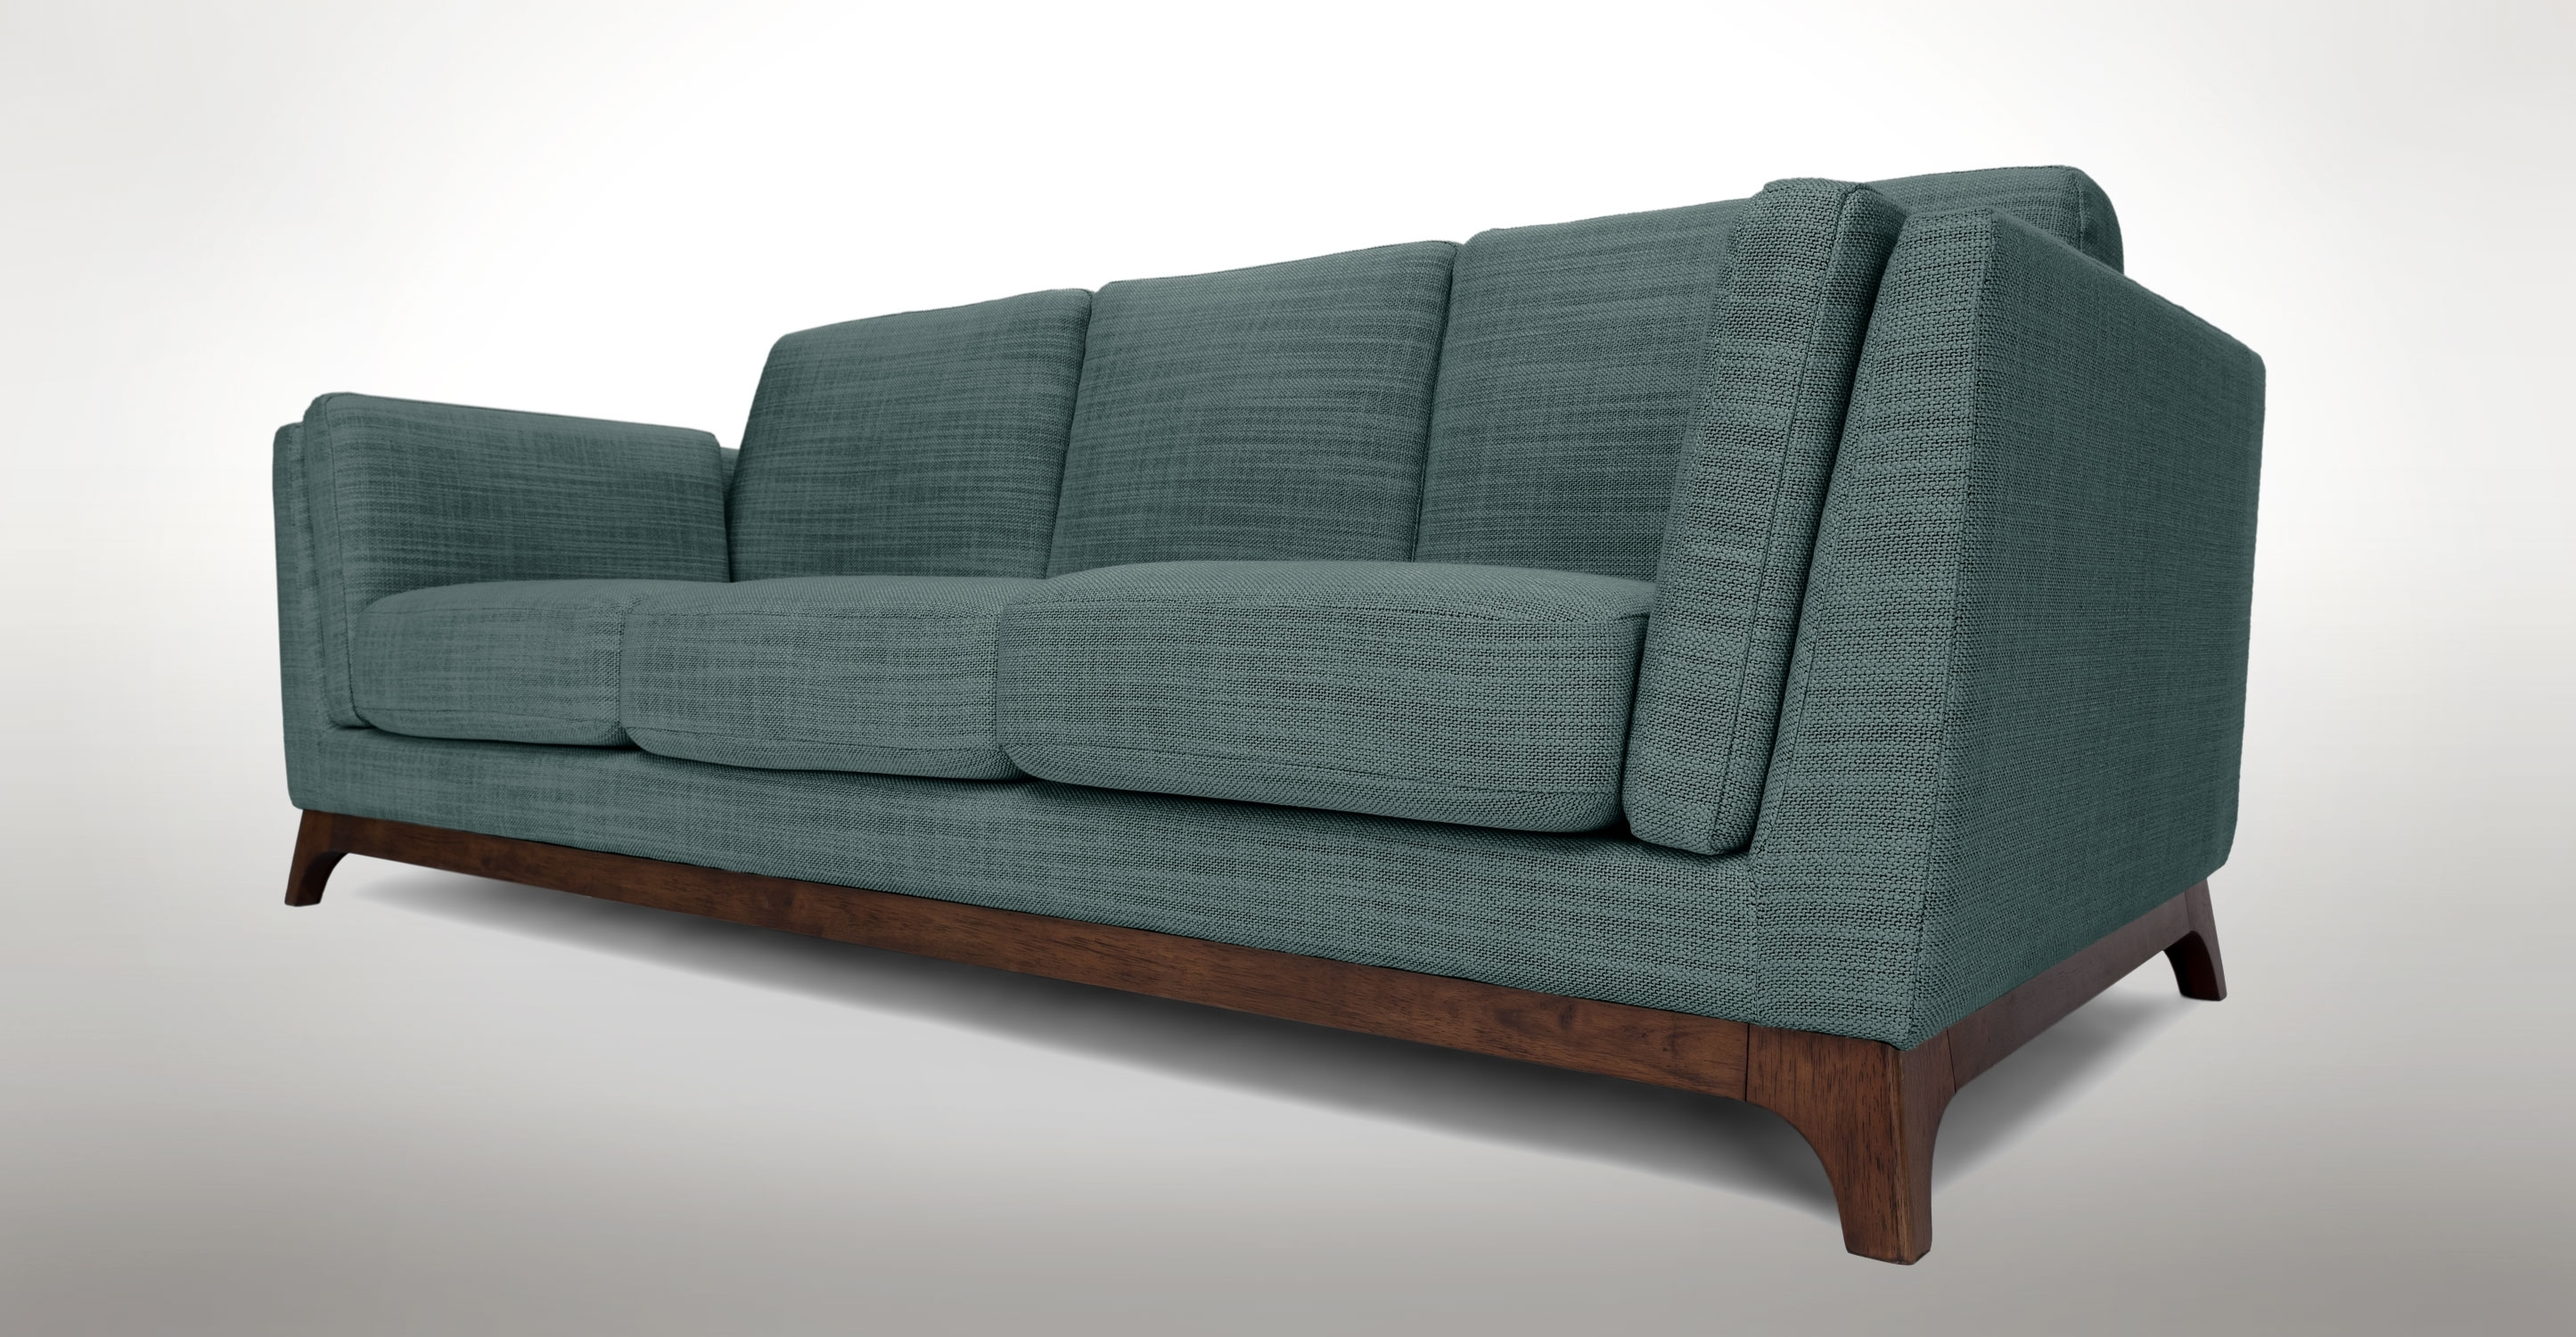 Blue Sofa 3 Seater With Solid Wood Legs | Article Ceni Modern within Aqua Sofas (Image 5 of 10)